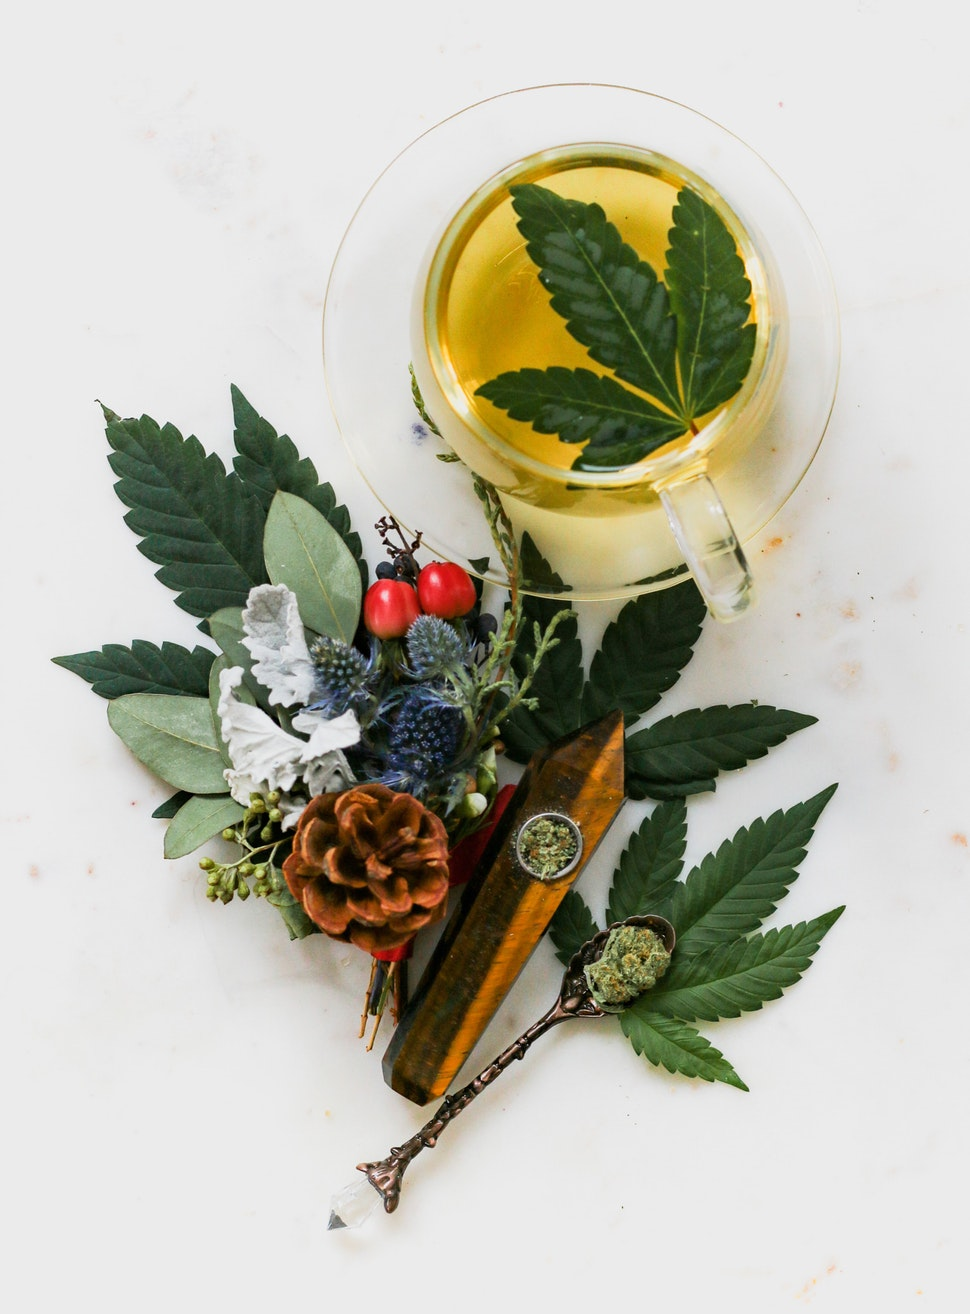 CBD Tea: Make Your Own With These Tasty Flavors - Cup & Leaf